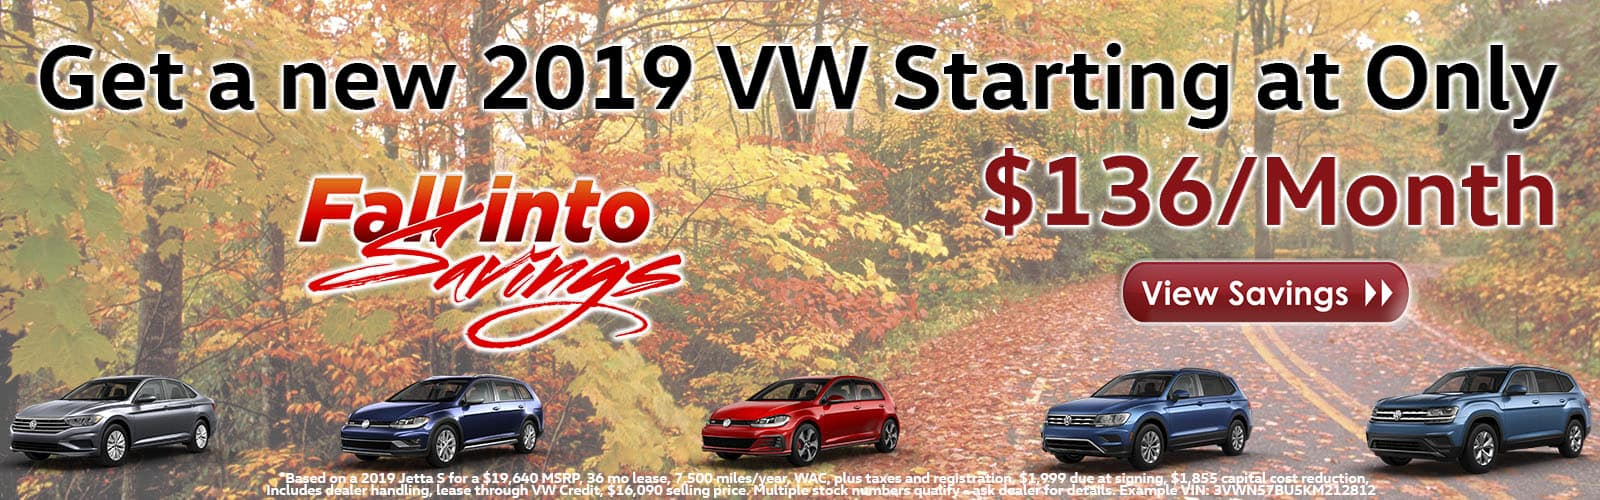 October Fall Into Savings Event